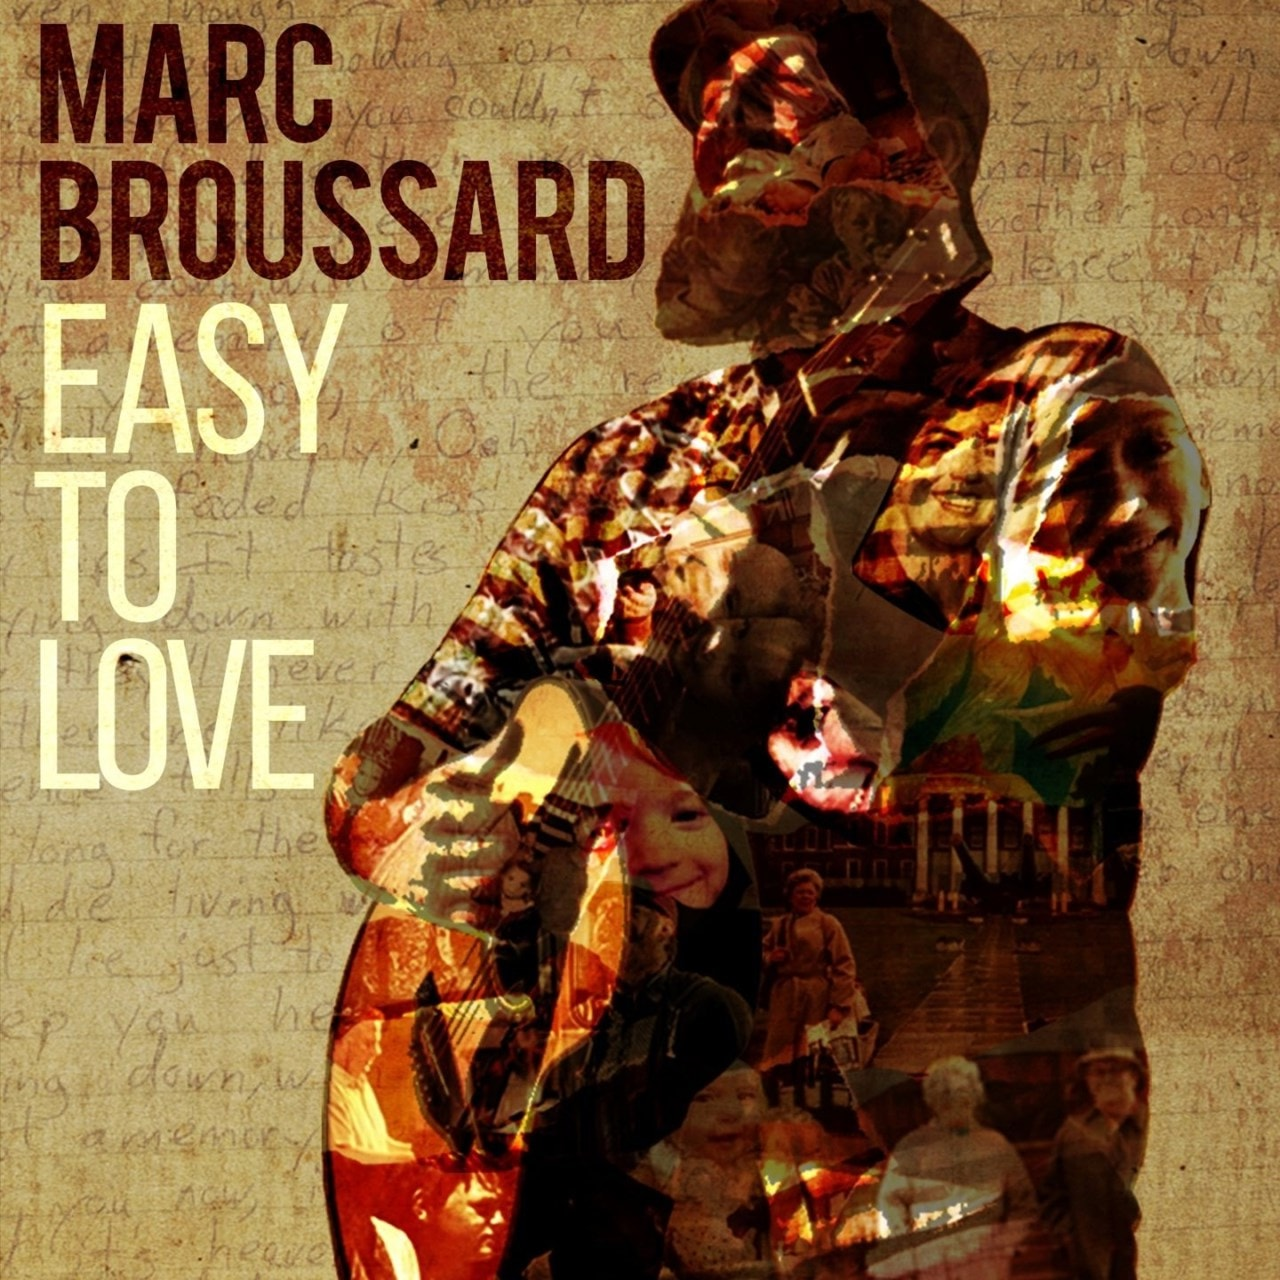 Easy to Love - 1